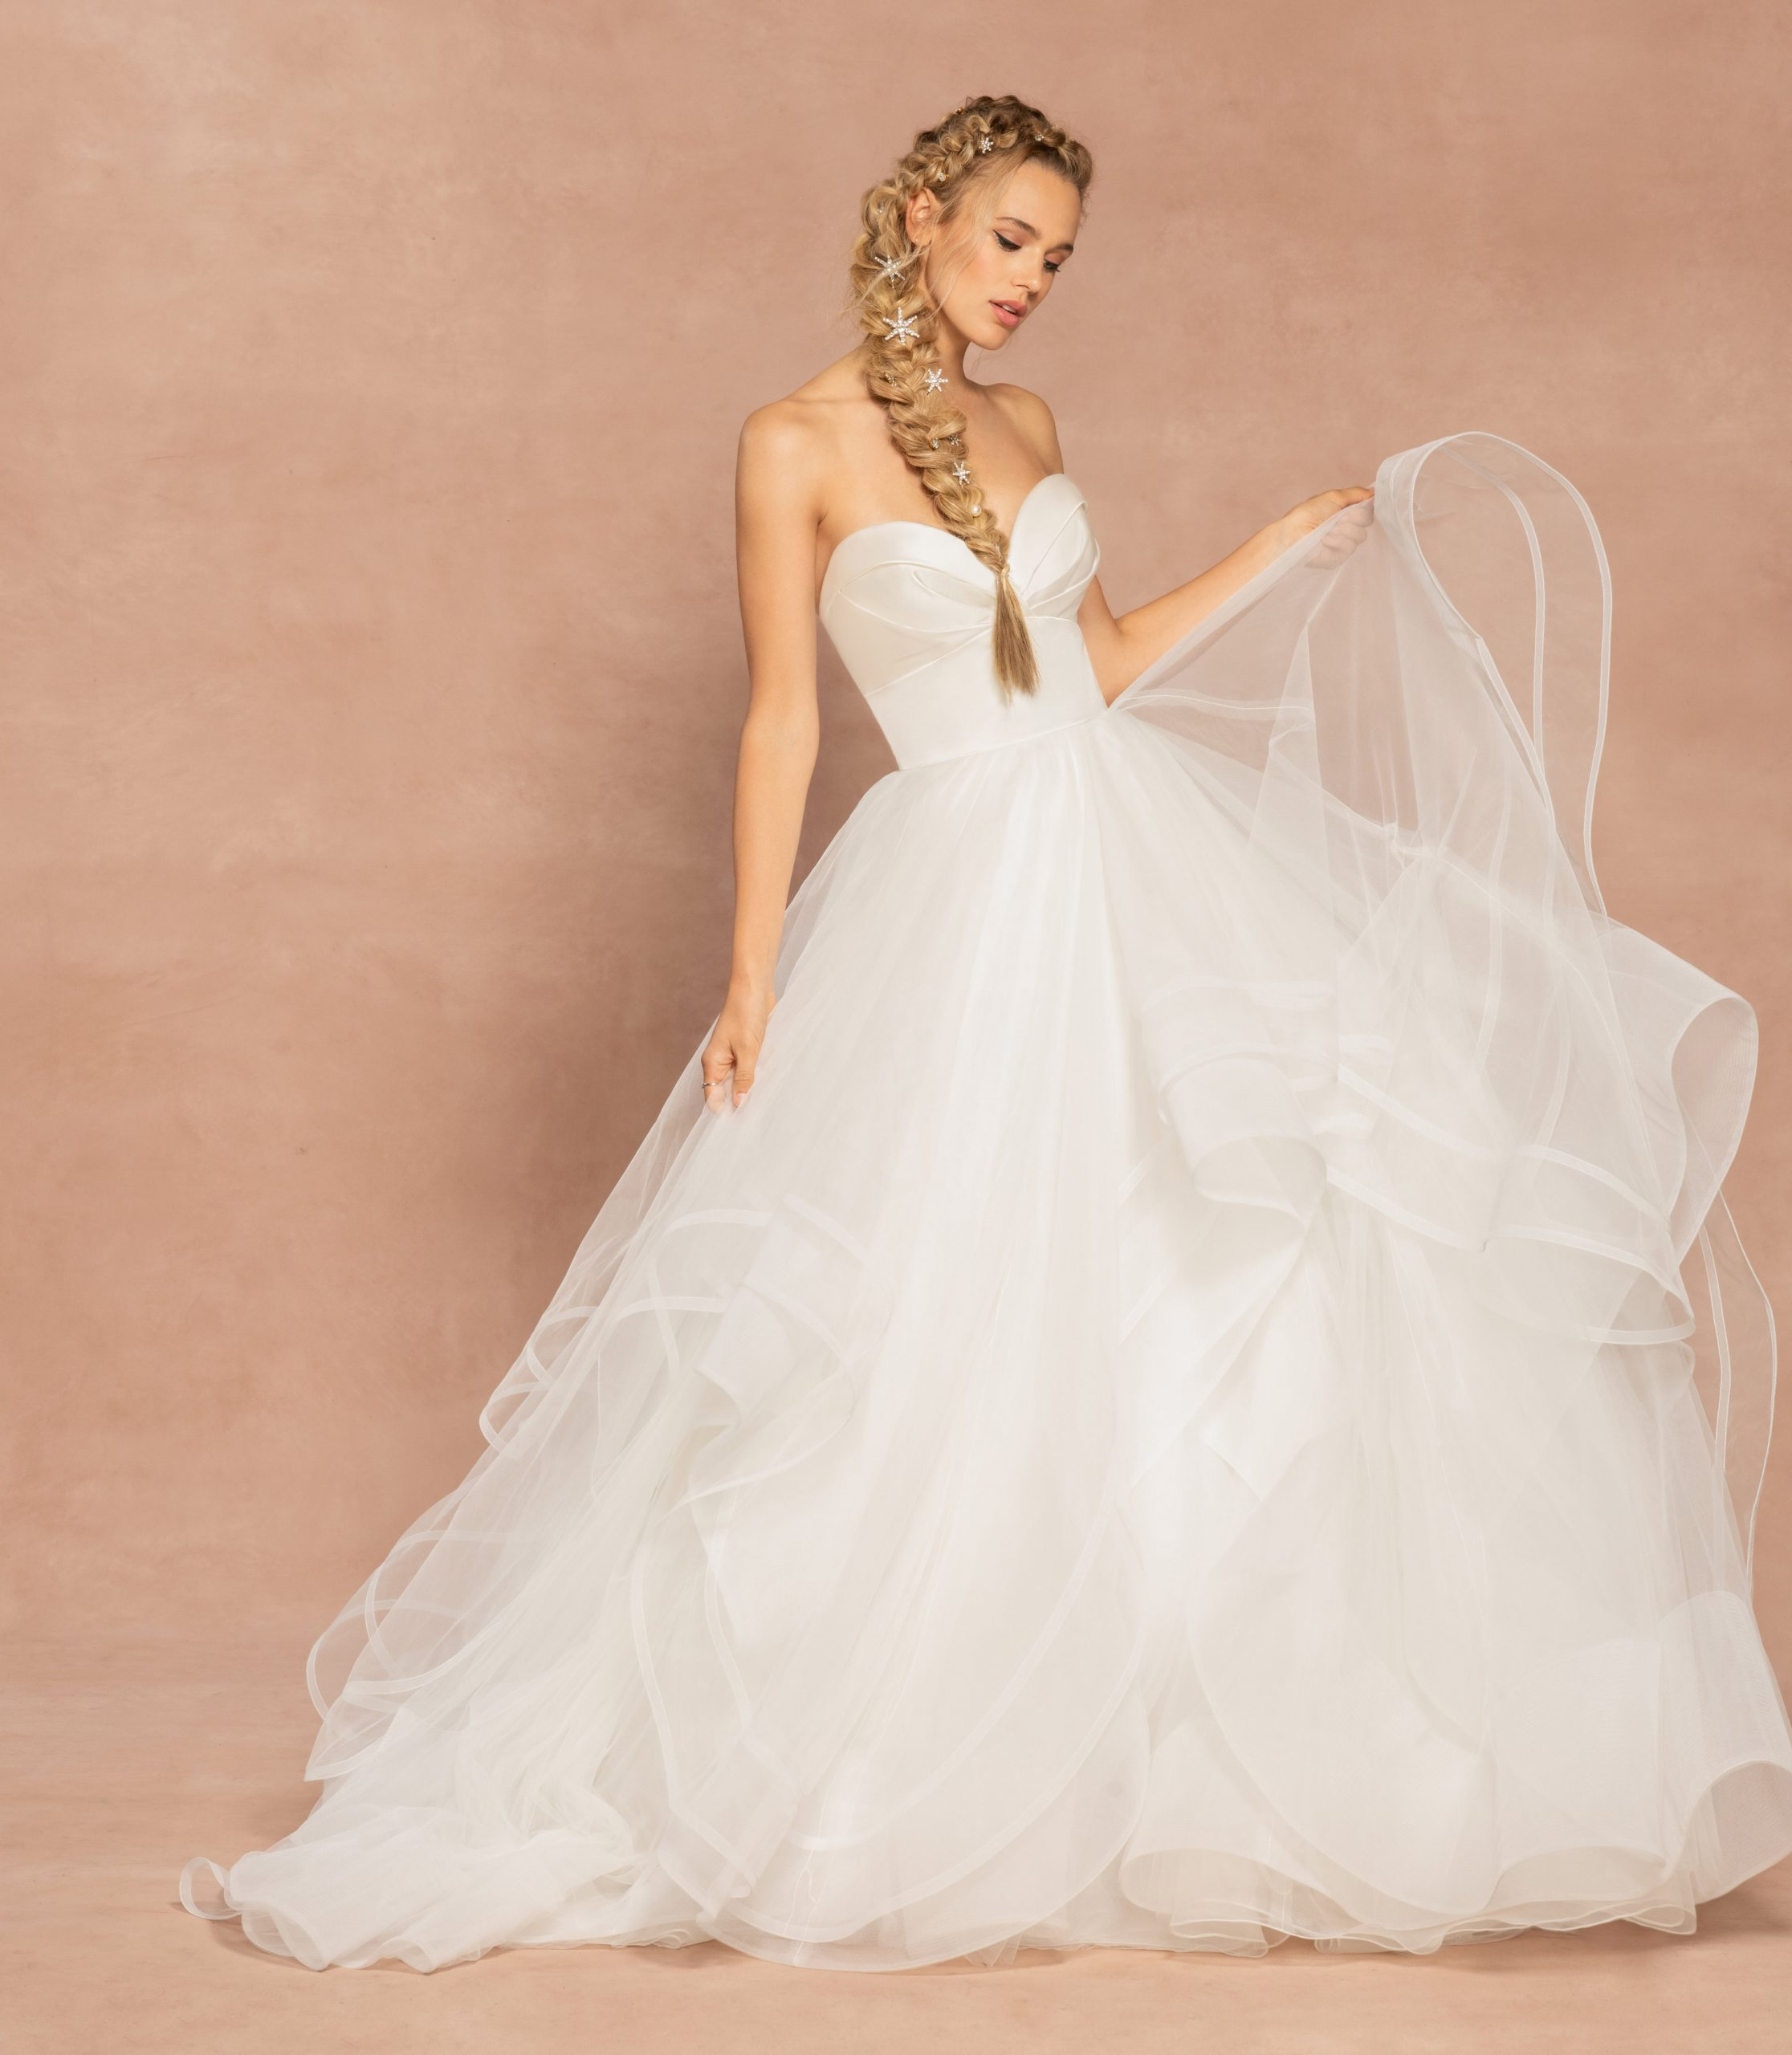 Strapless Sweetheart Neckline Ball Gown Tulle Wedding Dress by Hayley Paige - Image 1